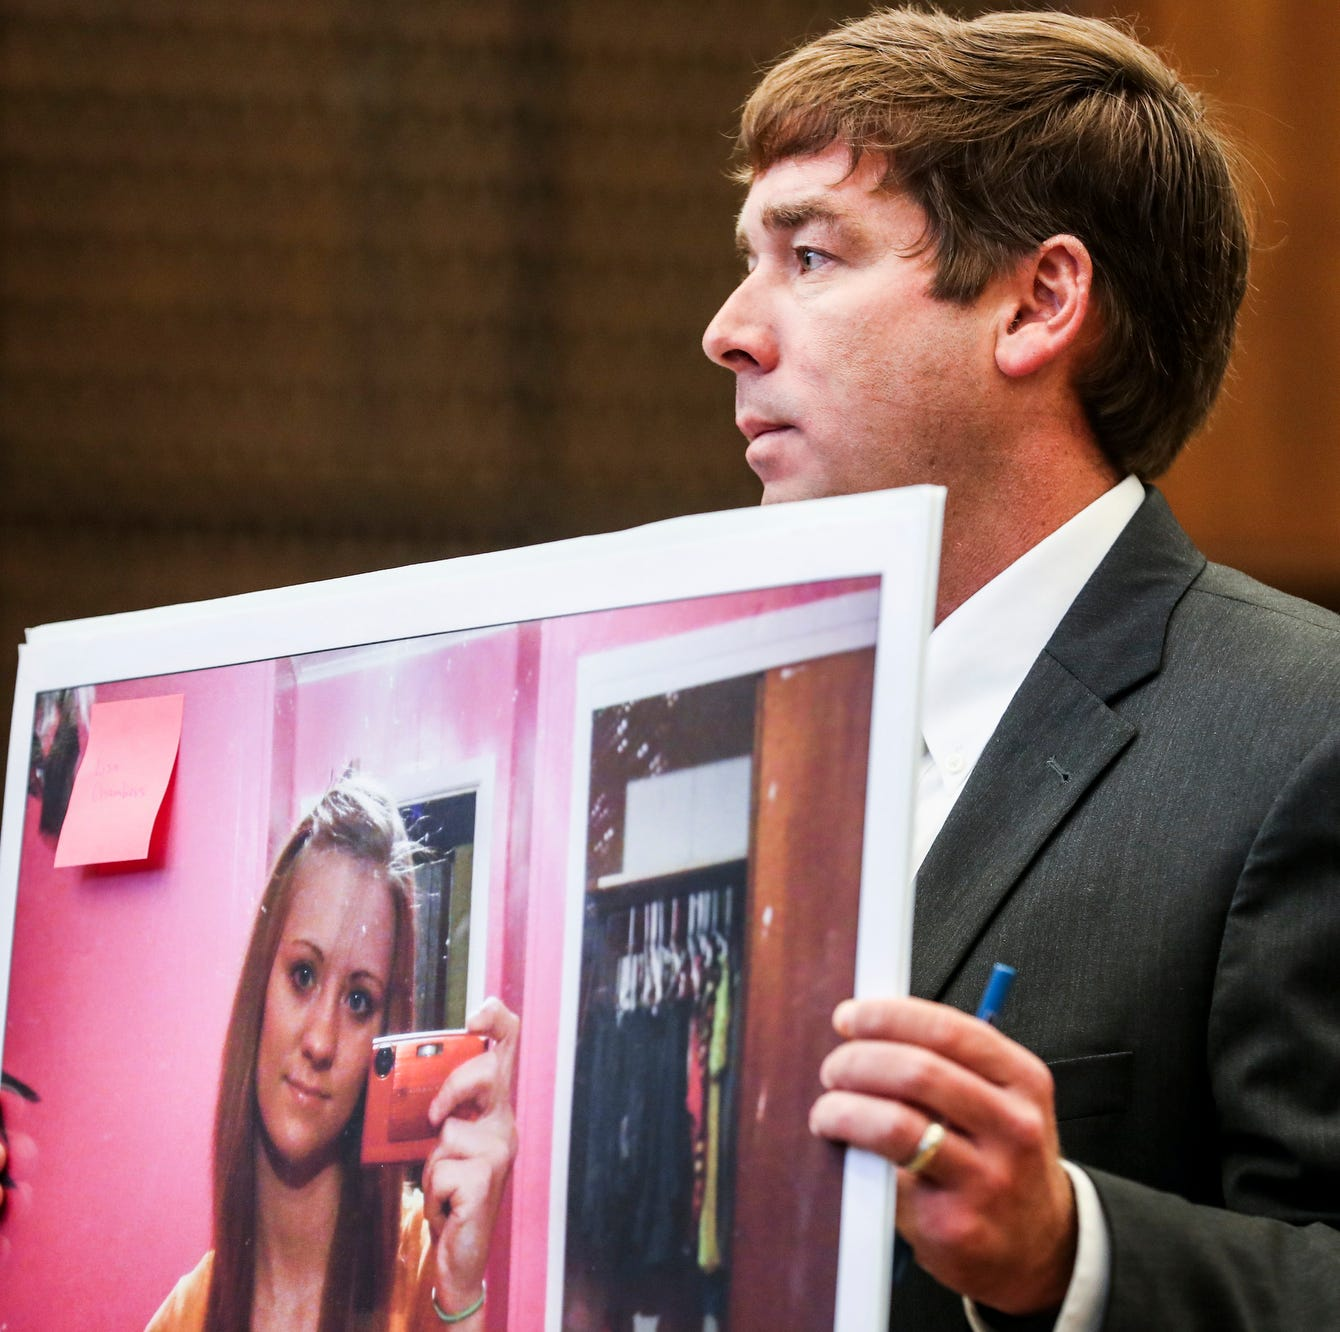 Jessica Chambers case: Watch live testimony in the second trial of Quinton Tellis